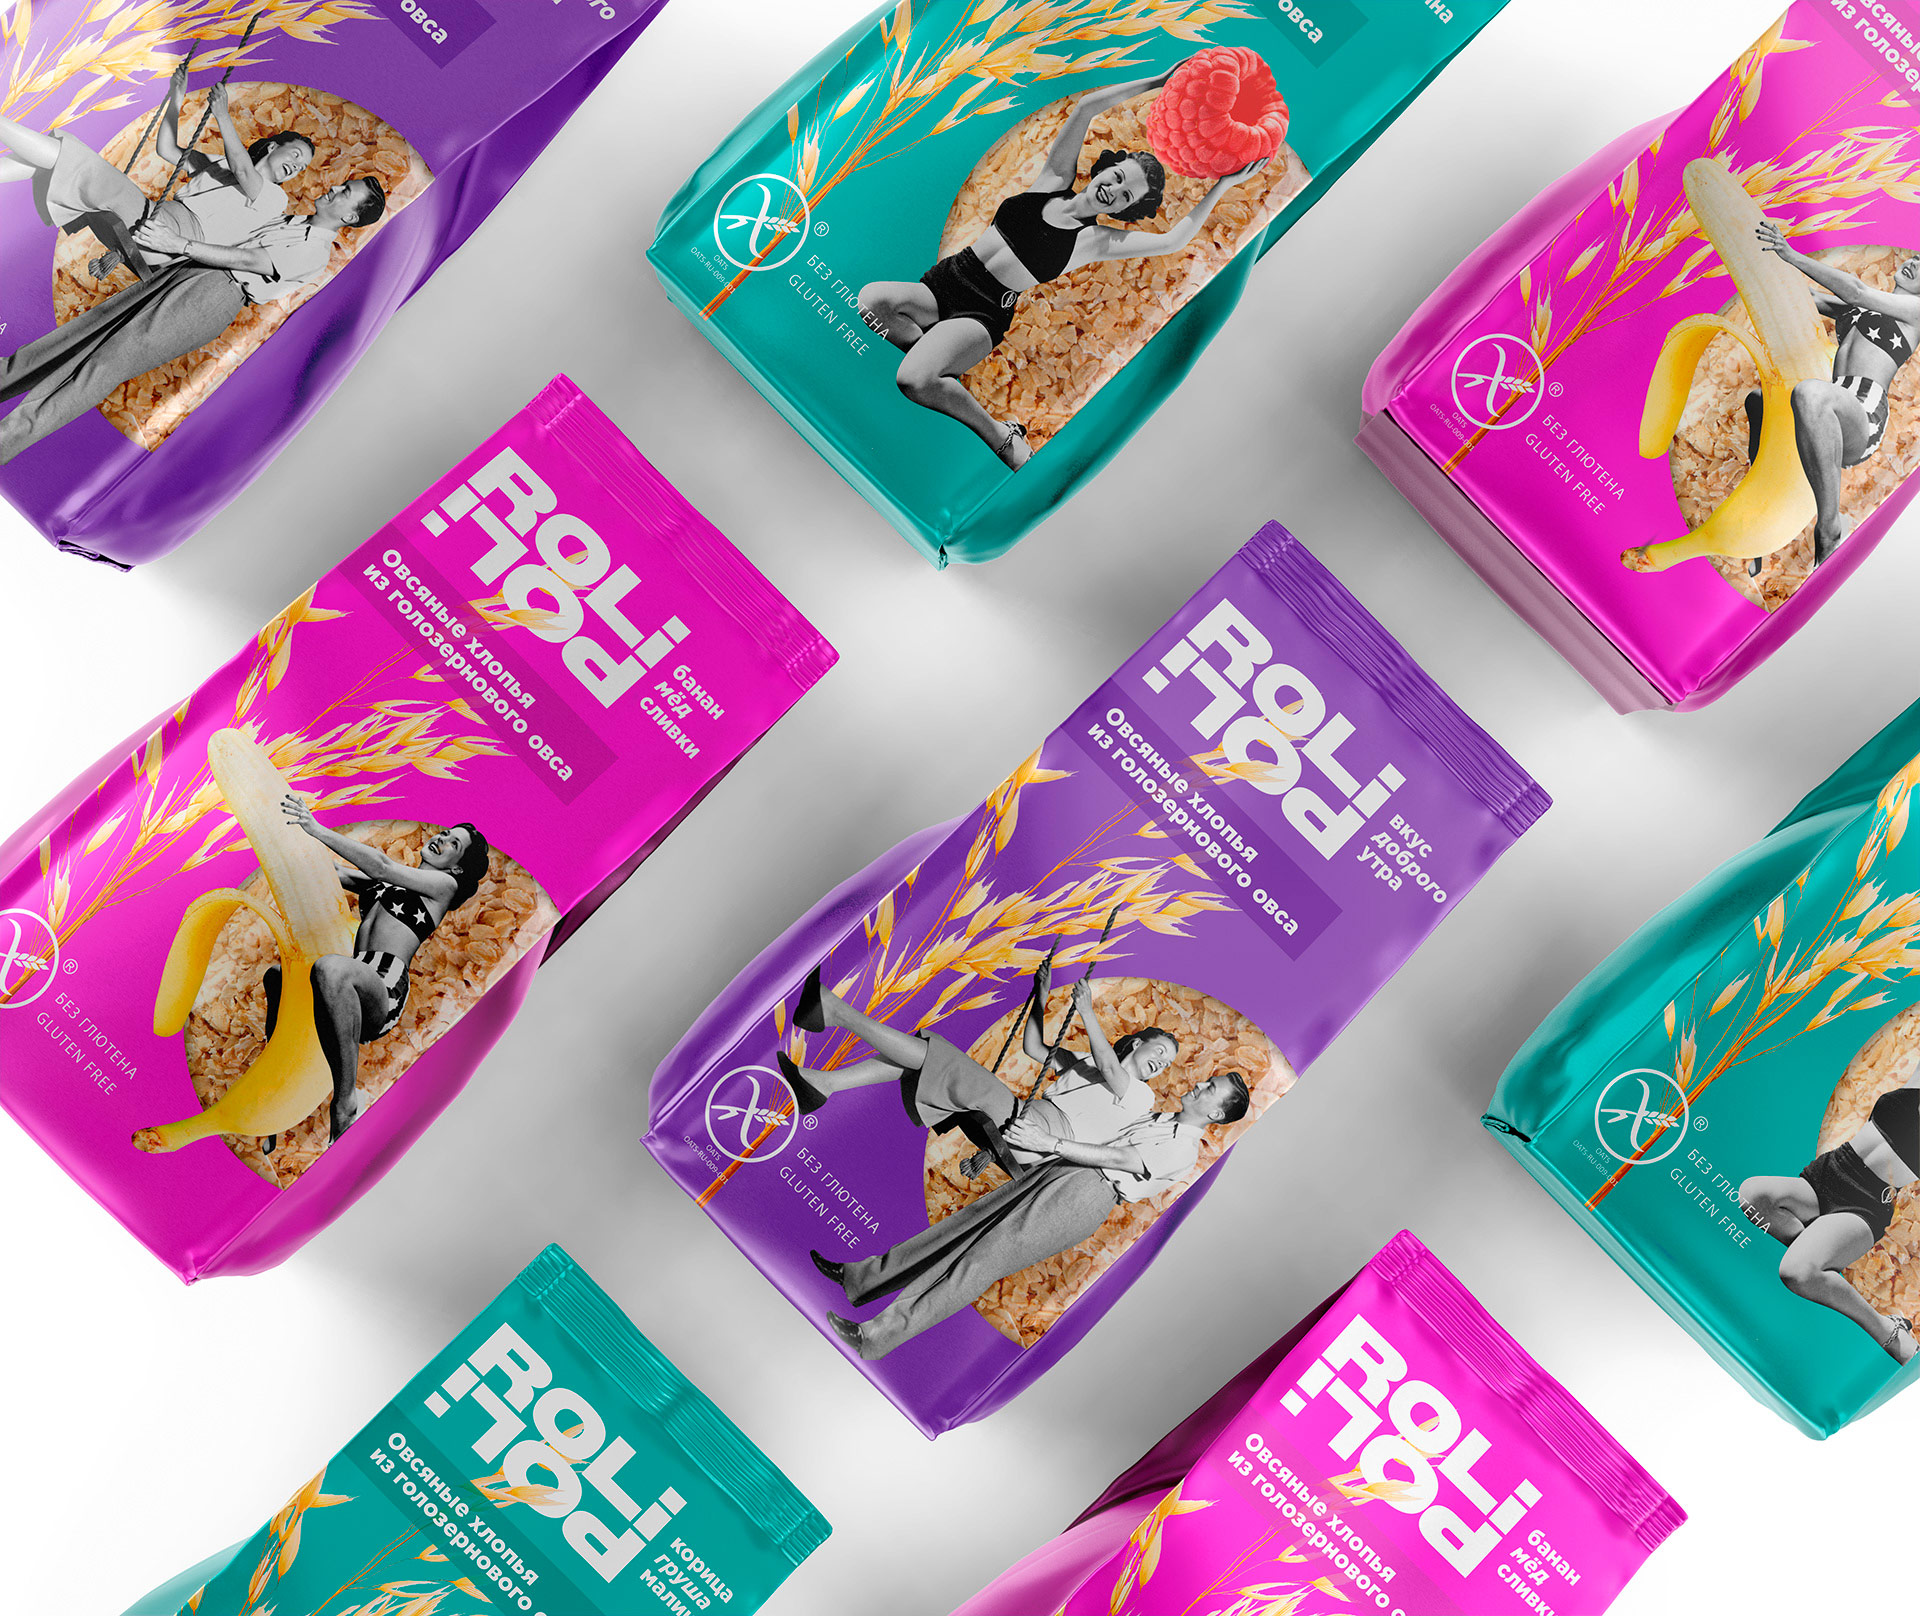 Oatmeal Packaging Design for Rolipoli Created by Part